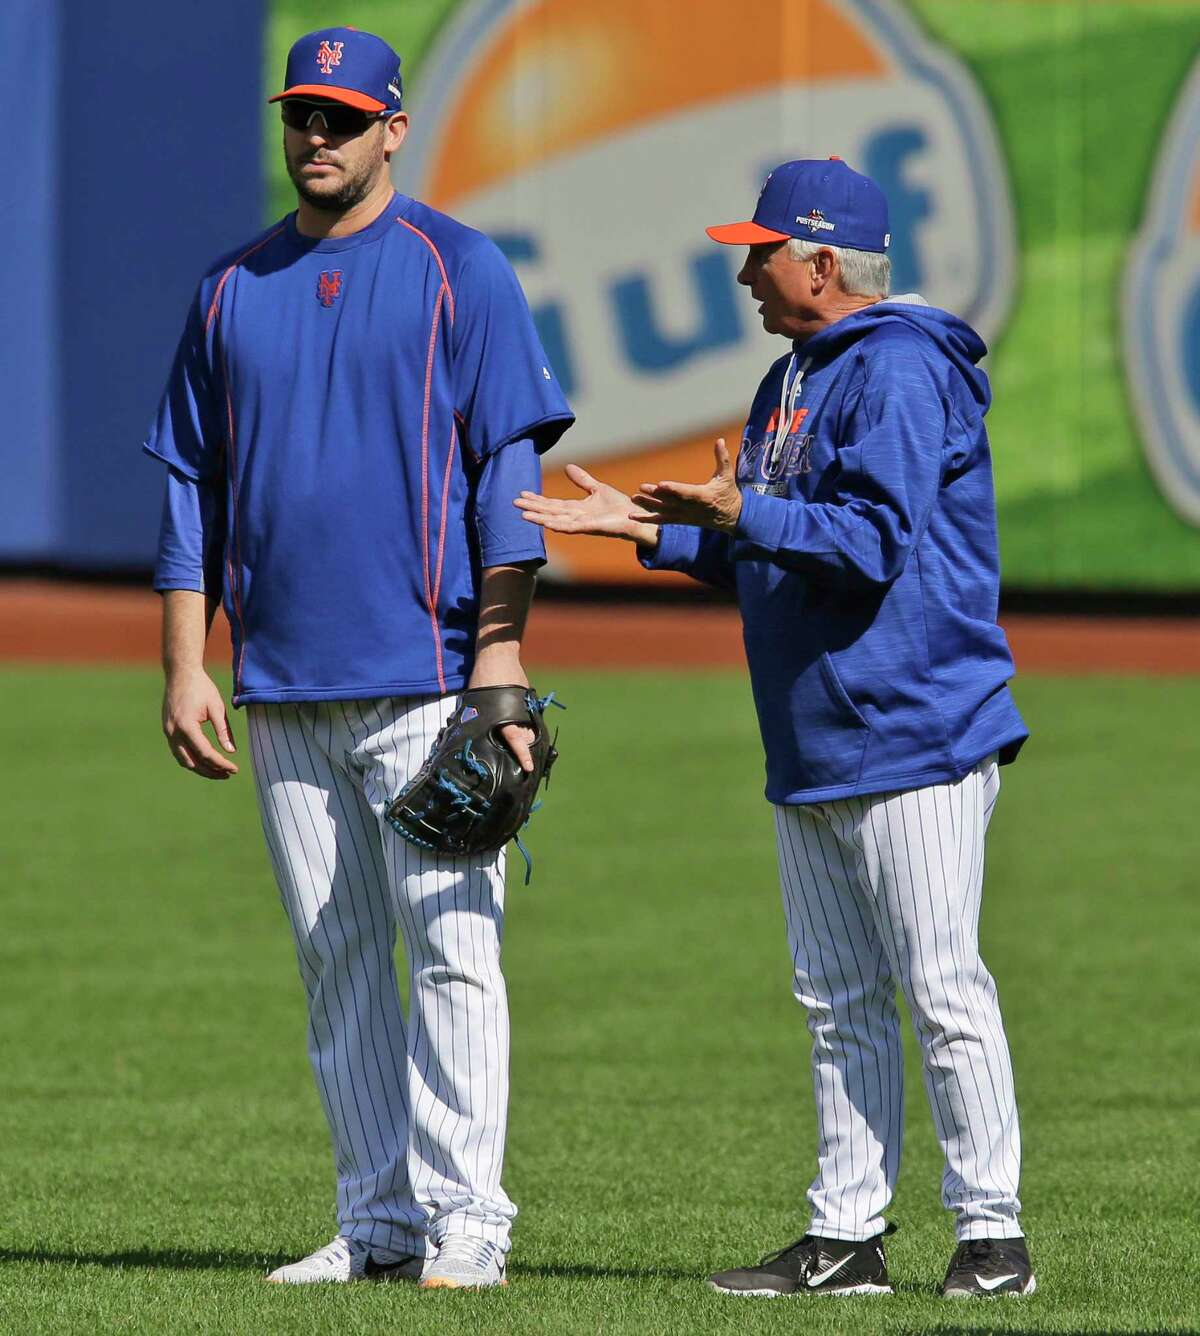 New York Mets manager Terry Collins, right, talks with pitcher Matt Harvey during a workout at Citi Field on Wednesday.